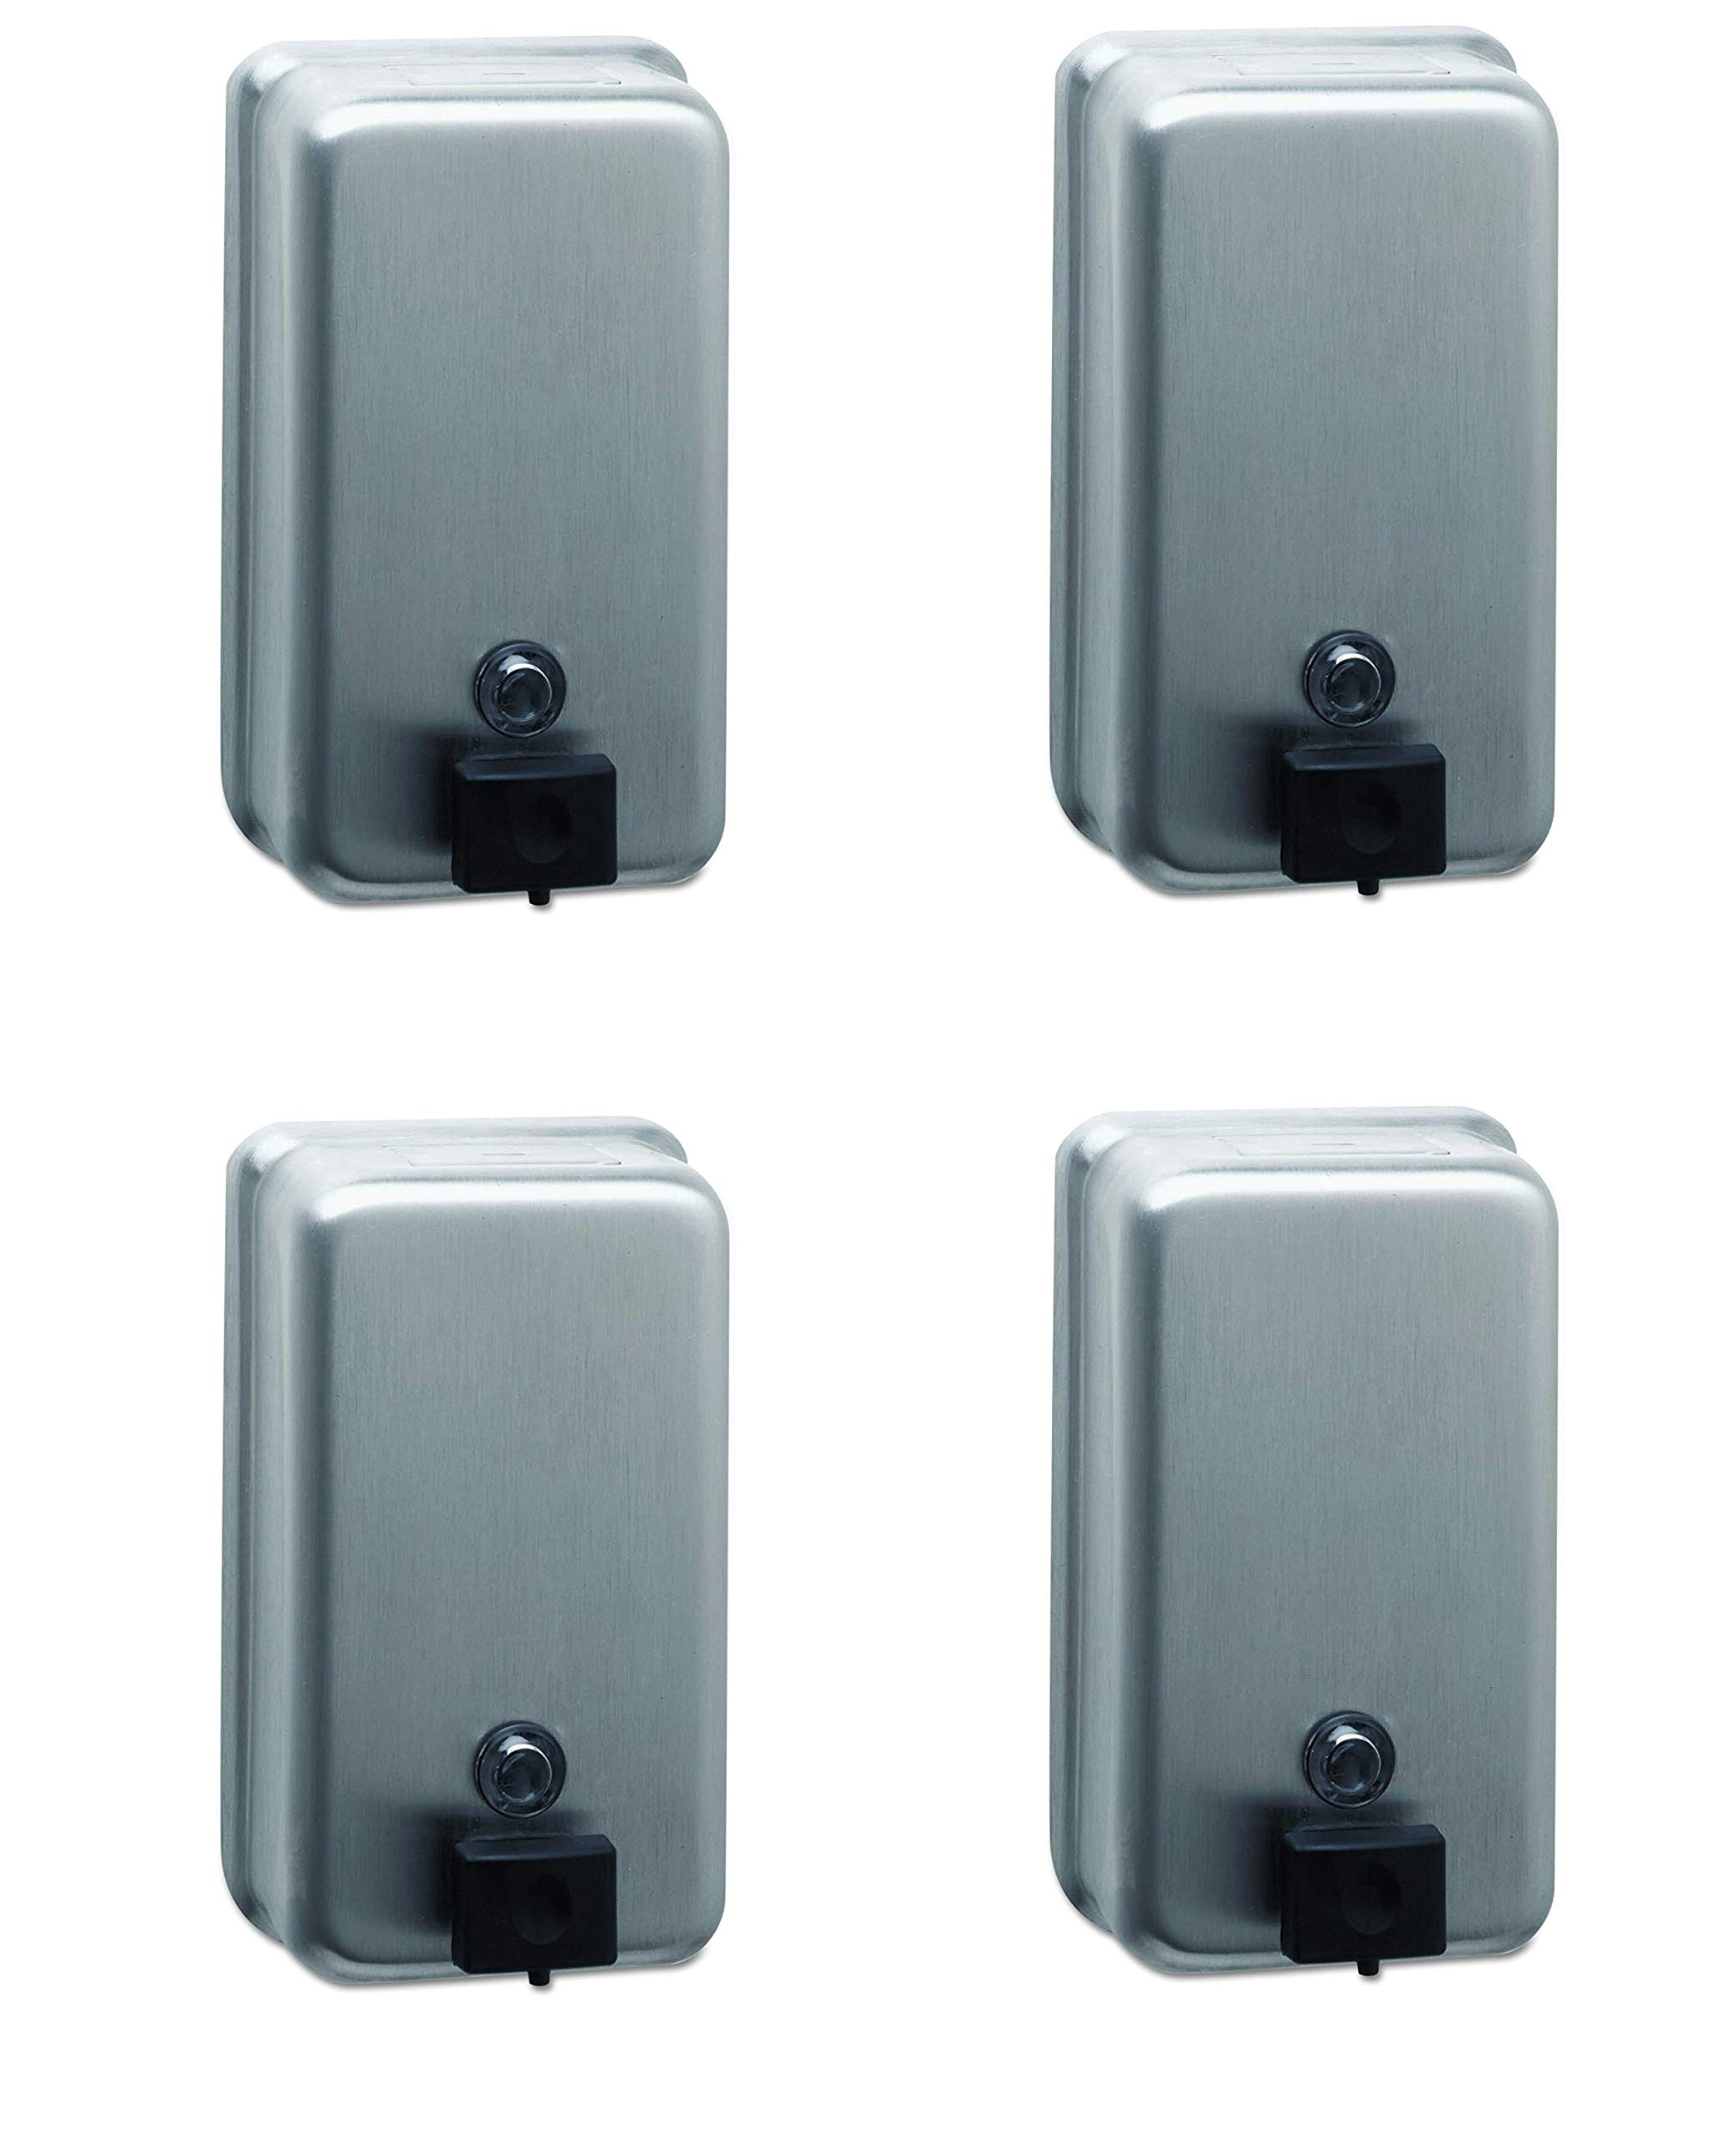 Bobrick 2111 ClassicSeries Surface-Mounted Soap Dispenser, 40oz, Stainless Steel (Pack of 4)